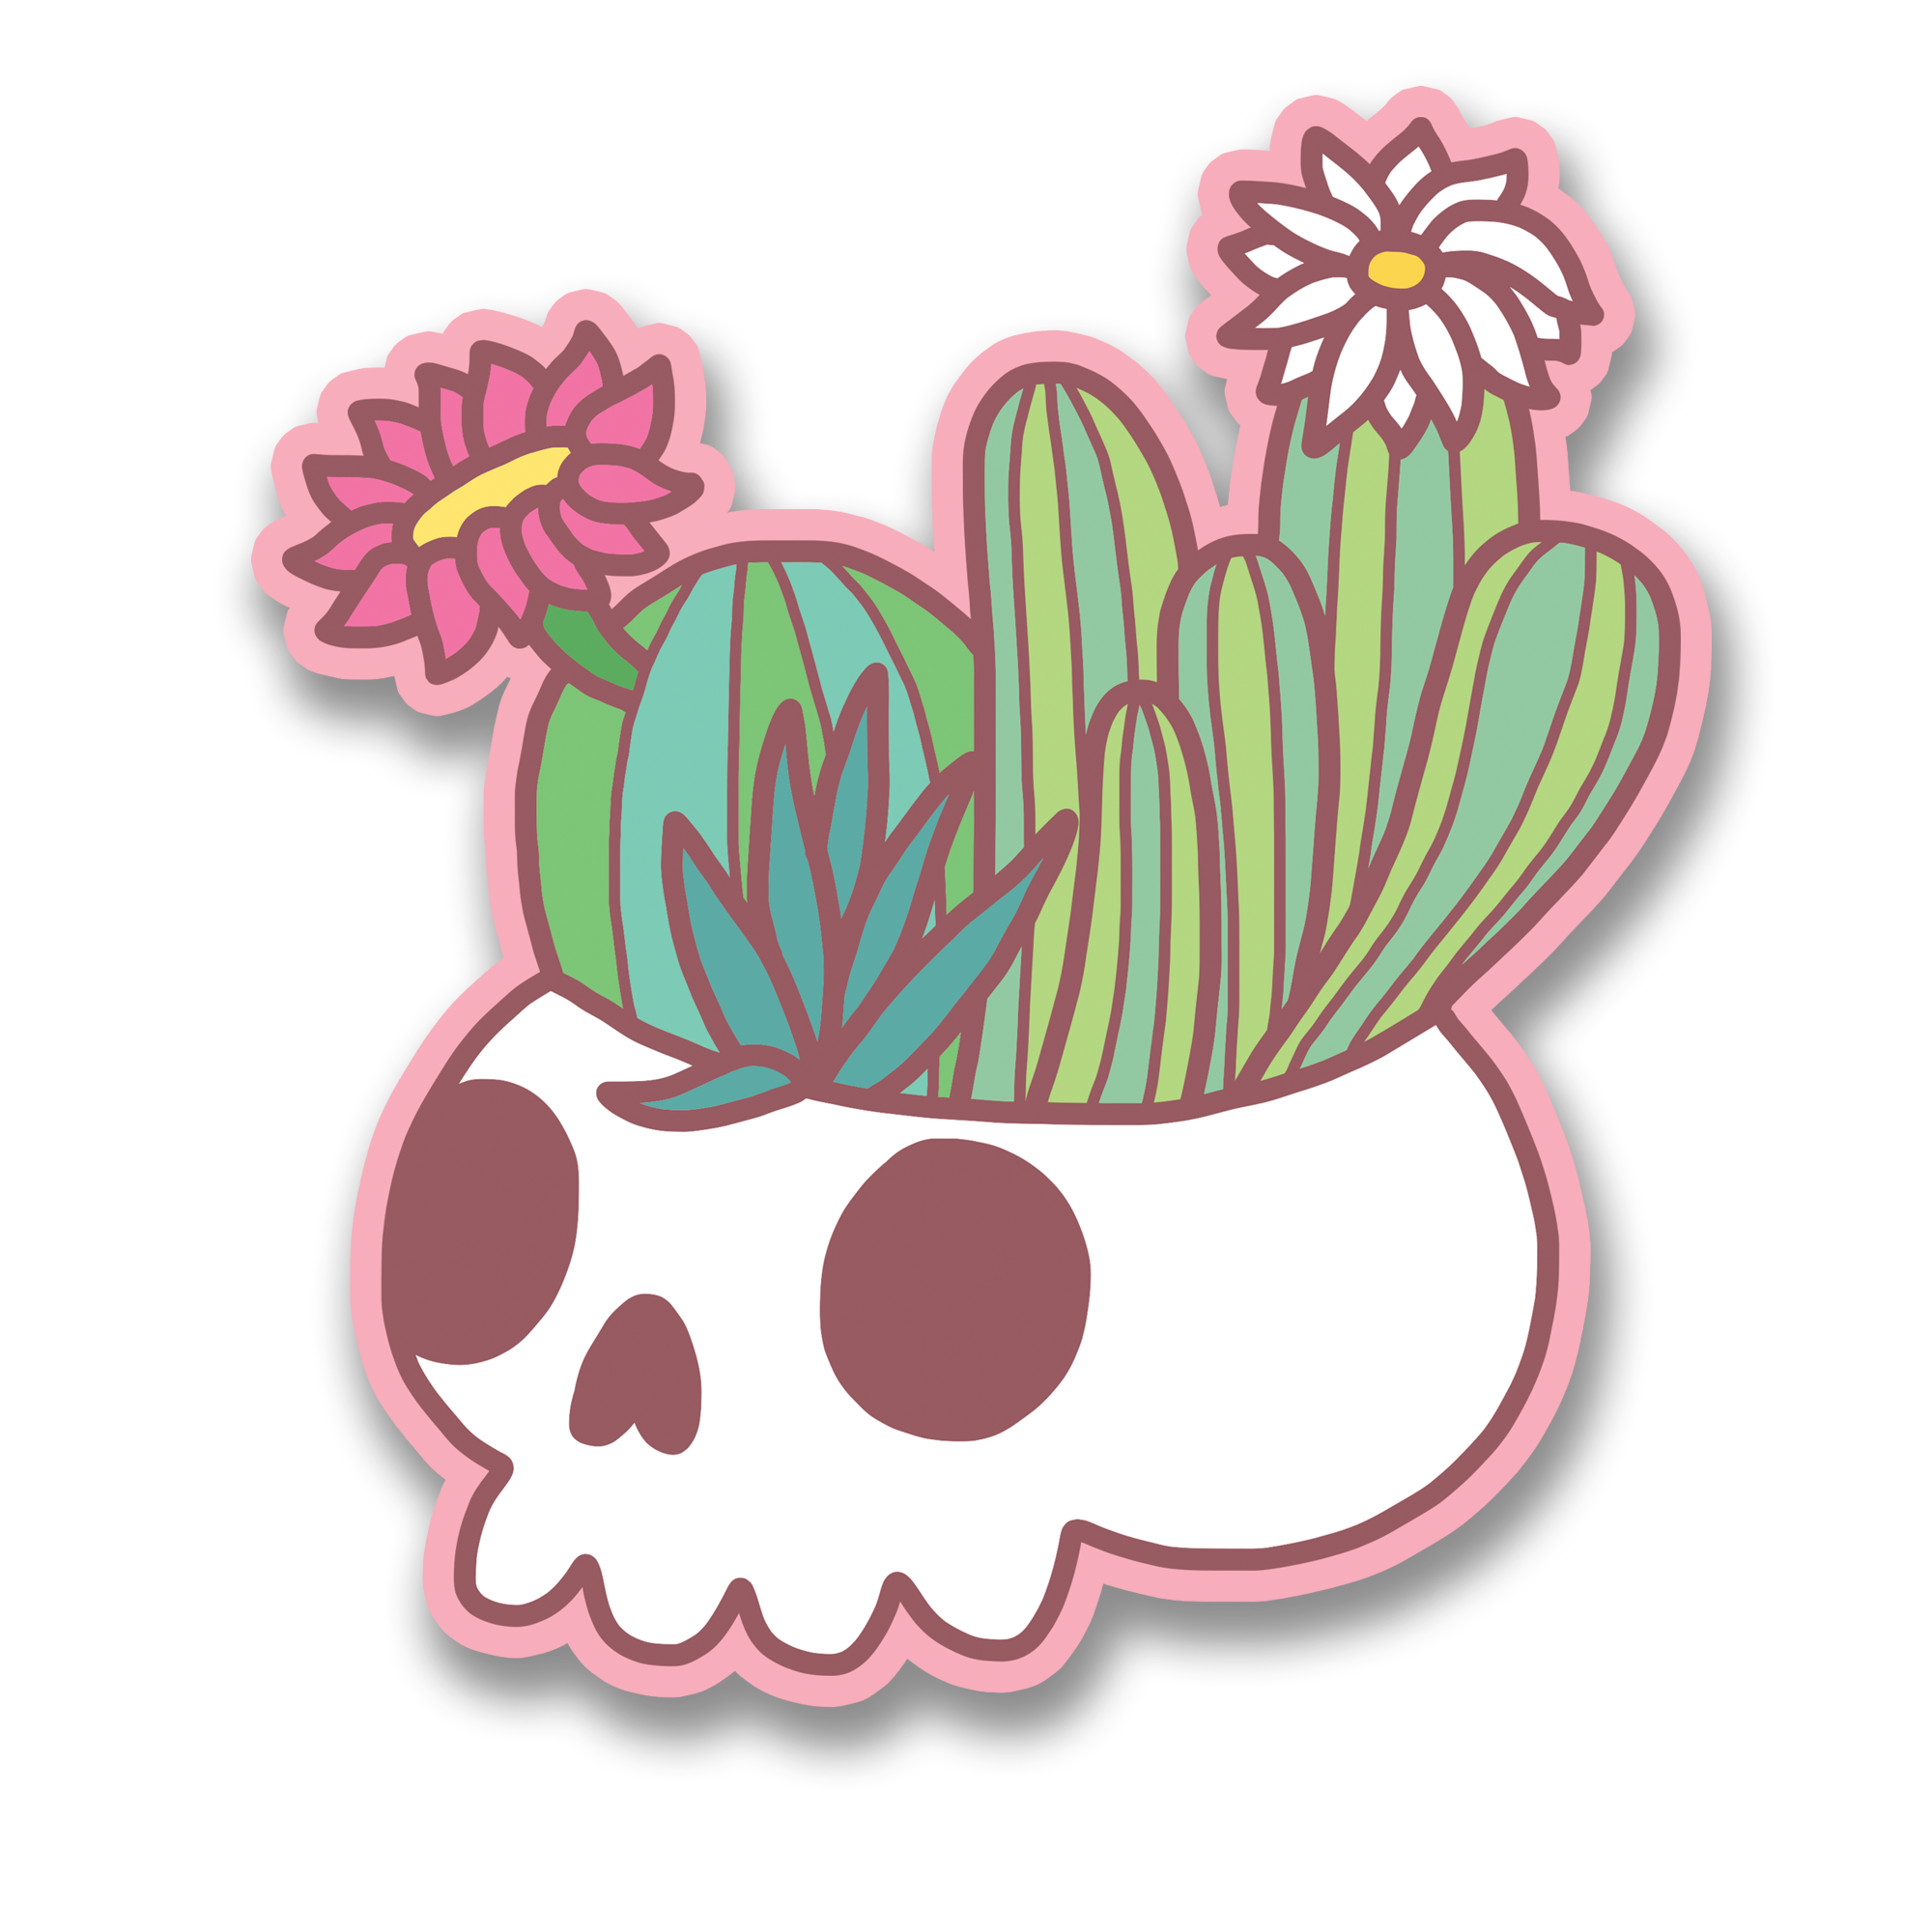 Flowering Cactus Skull Vinyl Sticker